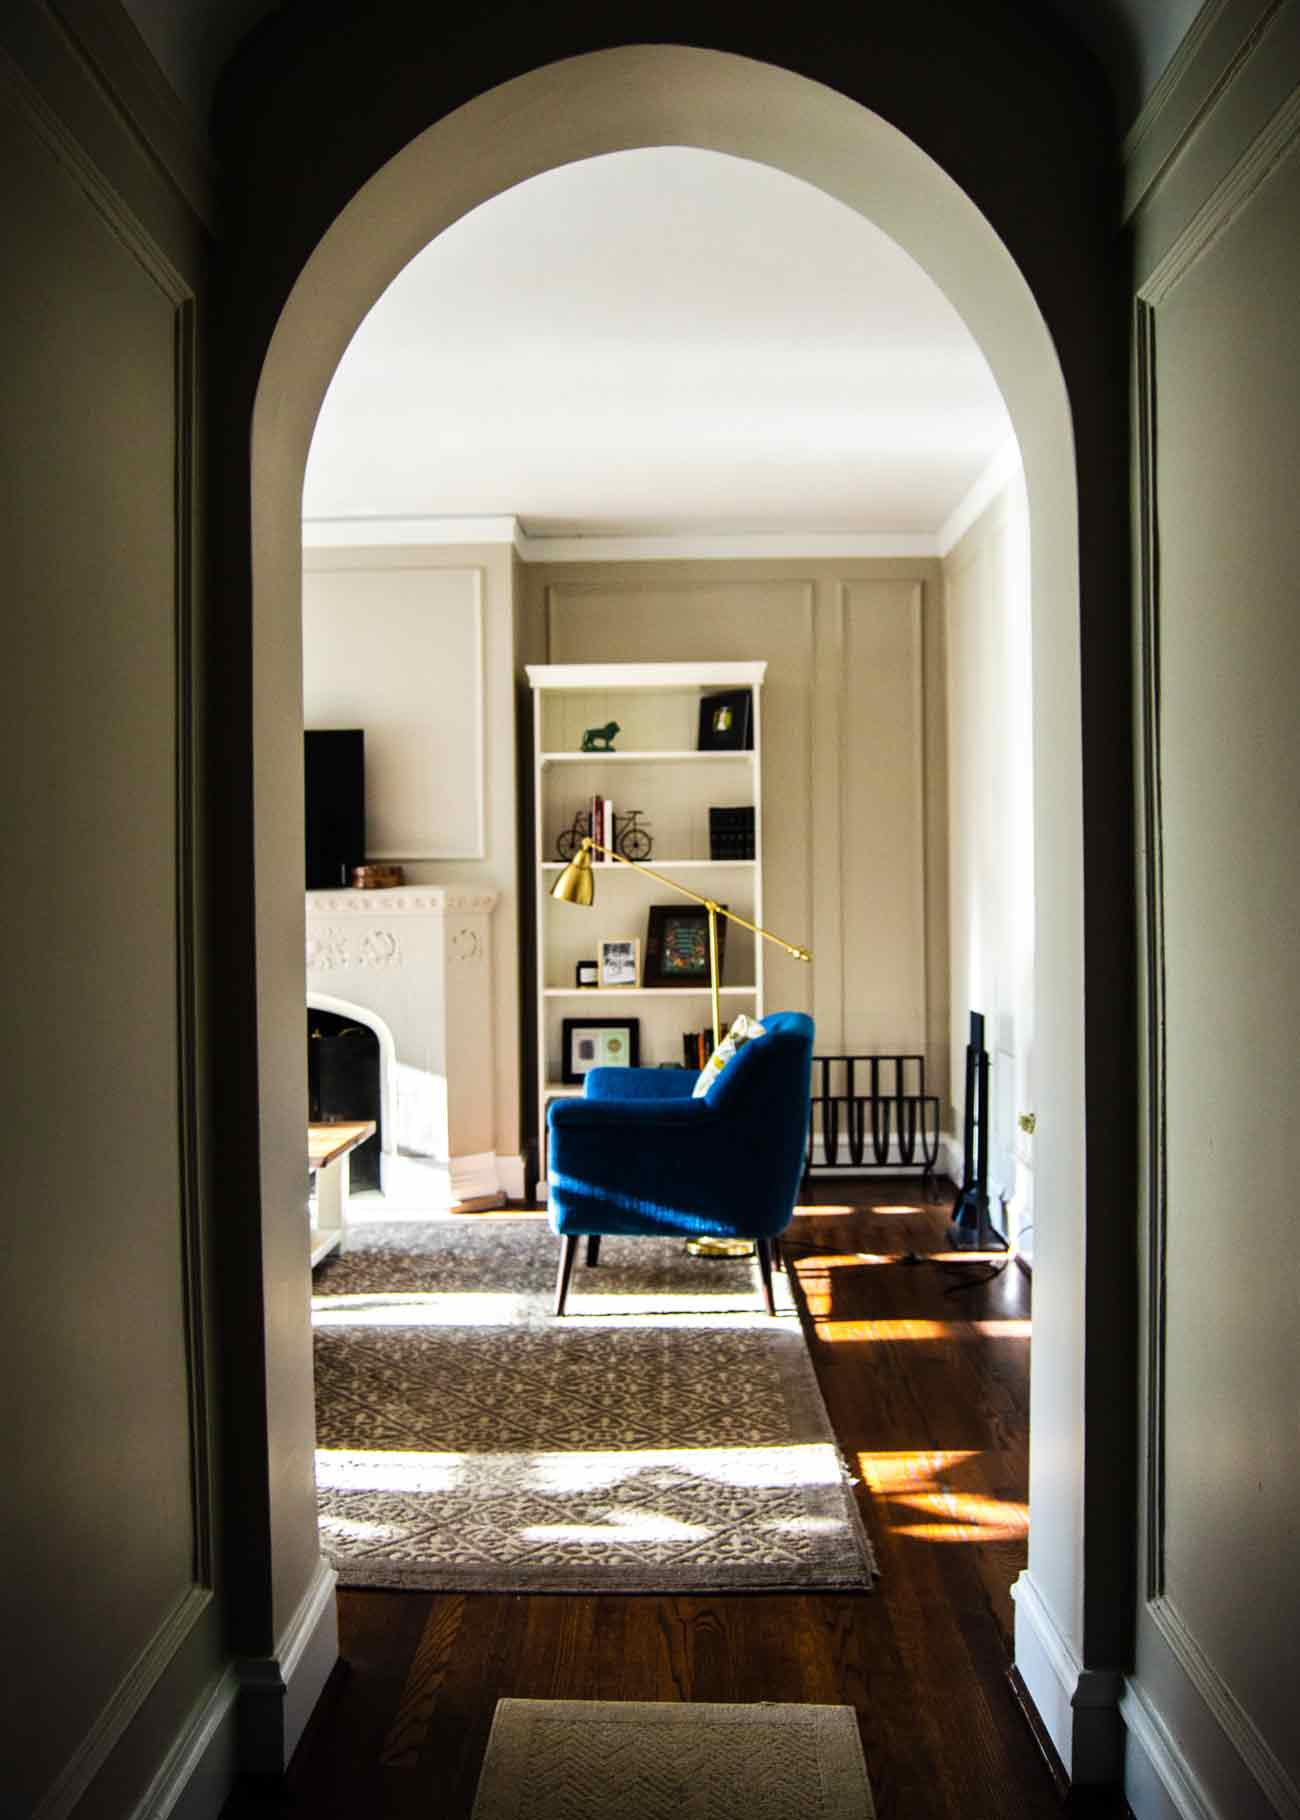 Art-Of-Finding-Reusing-Restyling-Vintage-Furniture-luxiders-magazine